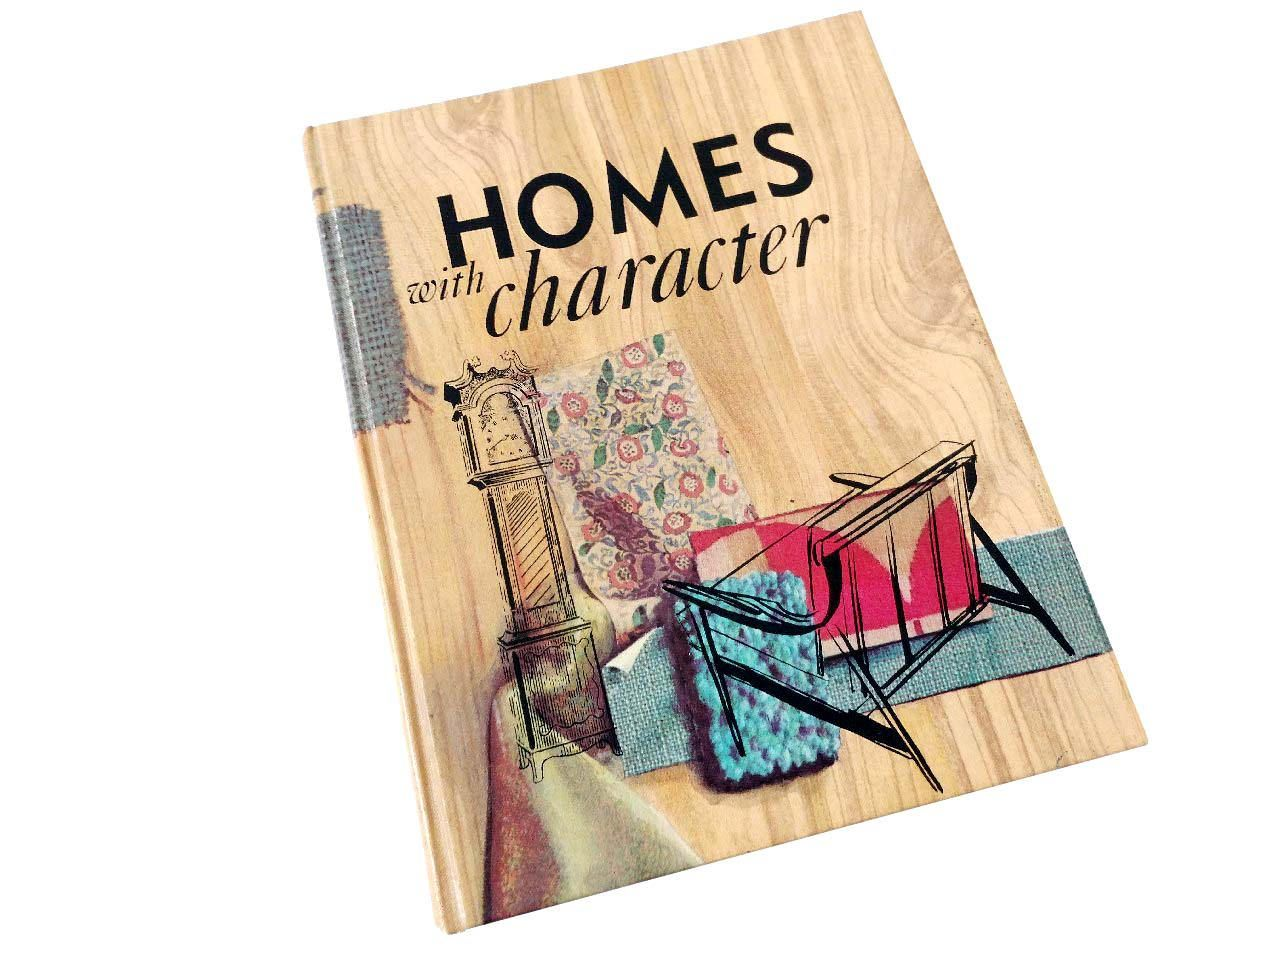 Homes with Character by Hazel Thompson Craig 1962 Home Economics     Homes with Character by Hazel Thompson Craig 1962 Home Economics Textbook  1960 s Interior Design Textbook Home Decorating by CollectionSelection on  Etsy